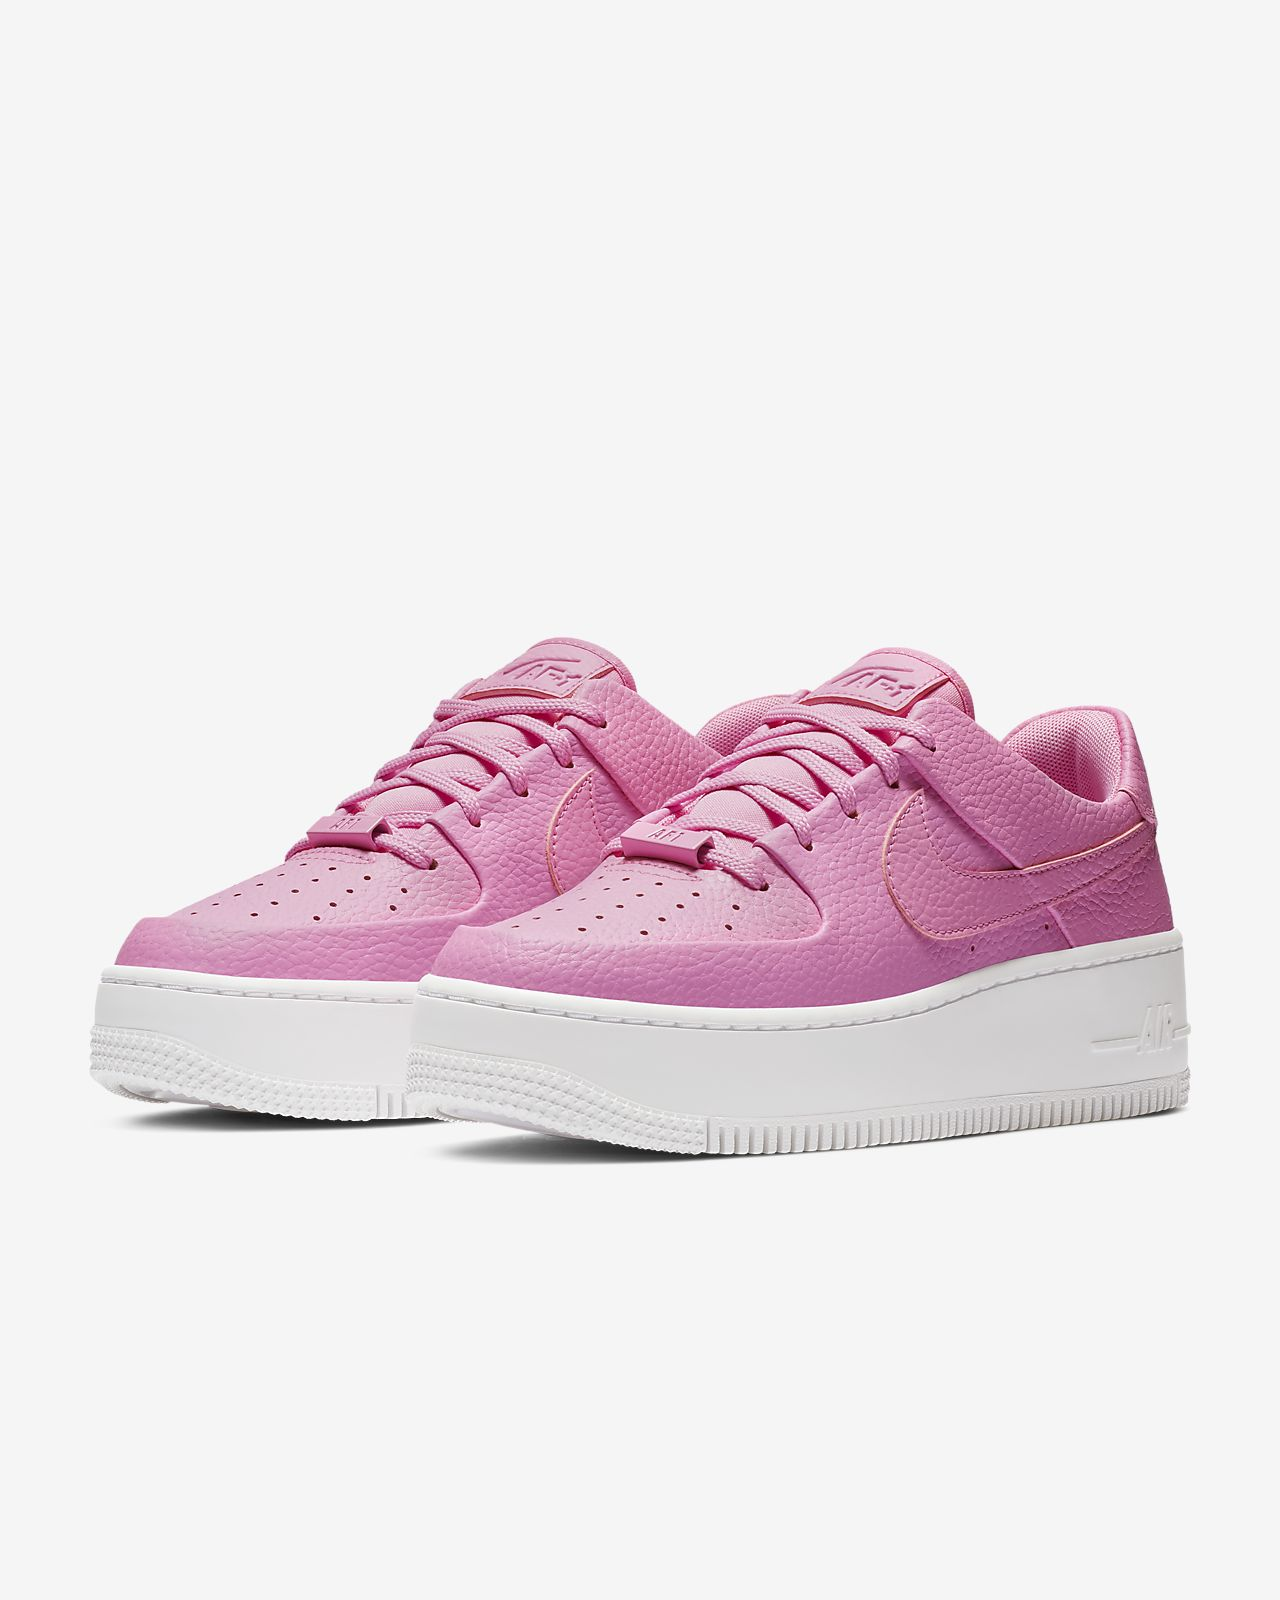 competitive price 5d33b a22c2 ... Nike Air Force 1 Sage Low Women s Shoe